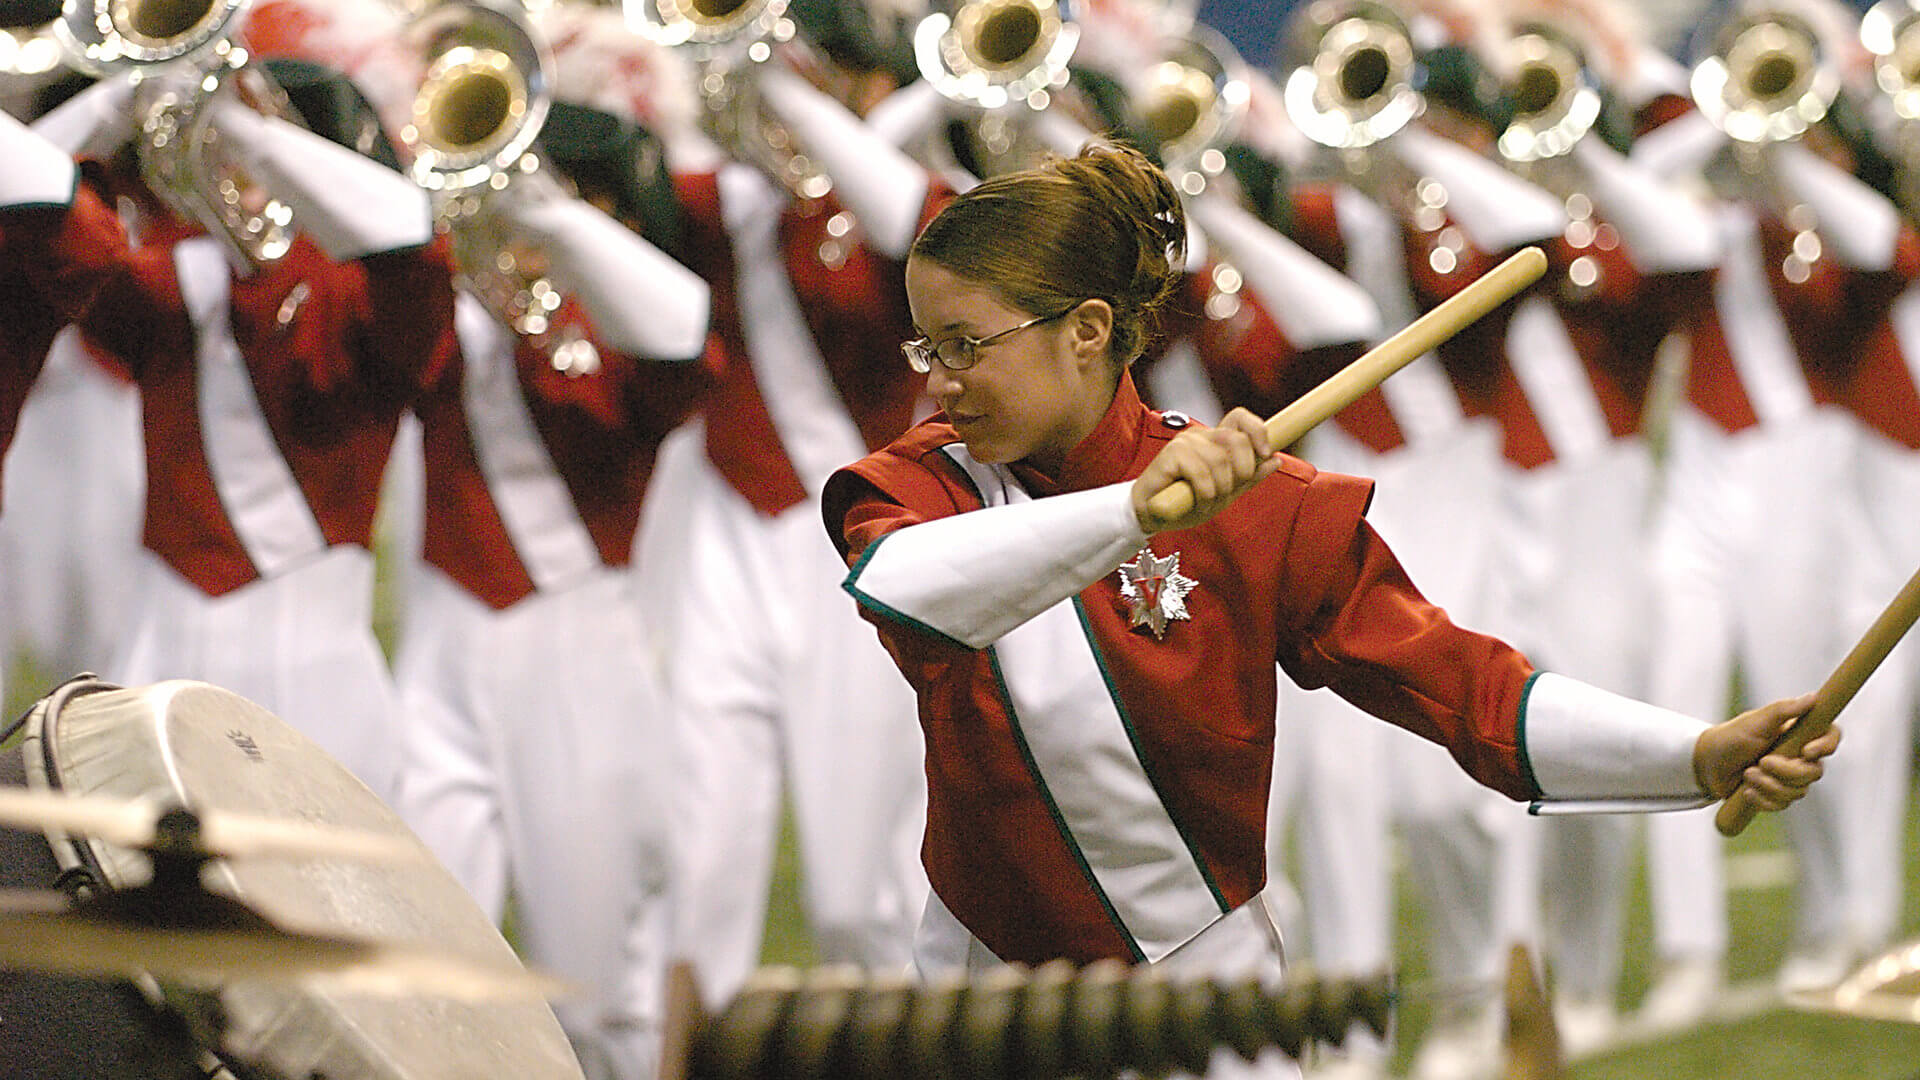 Spotlight of the Week: 2005 Santa Clara Vanguard